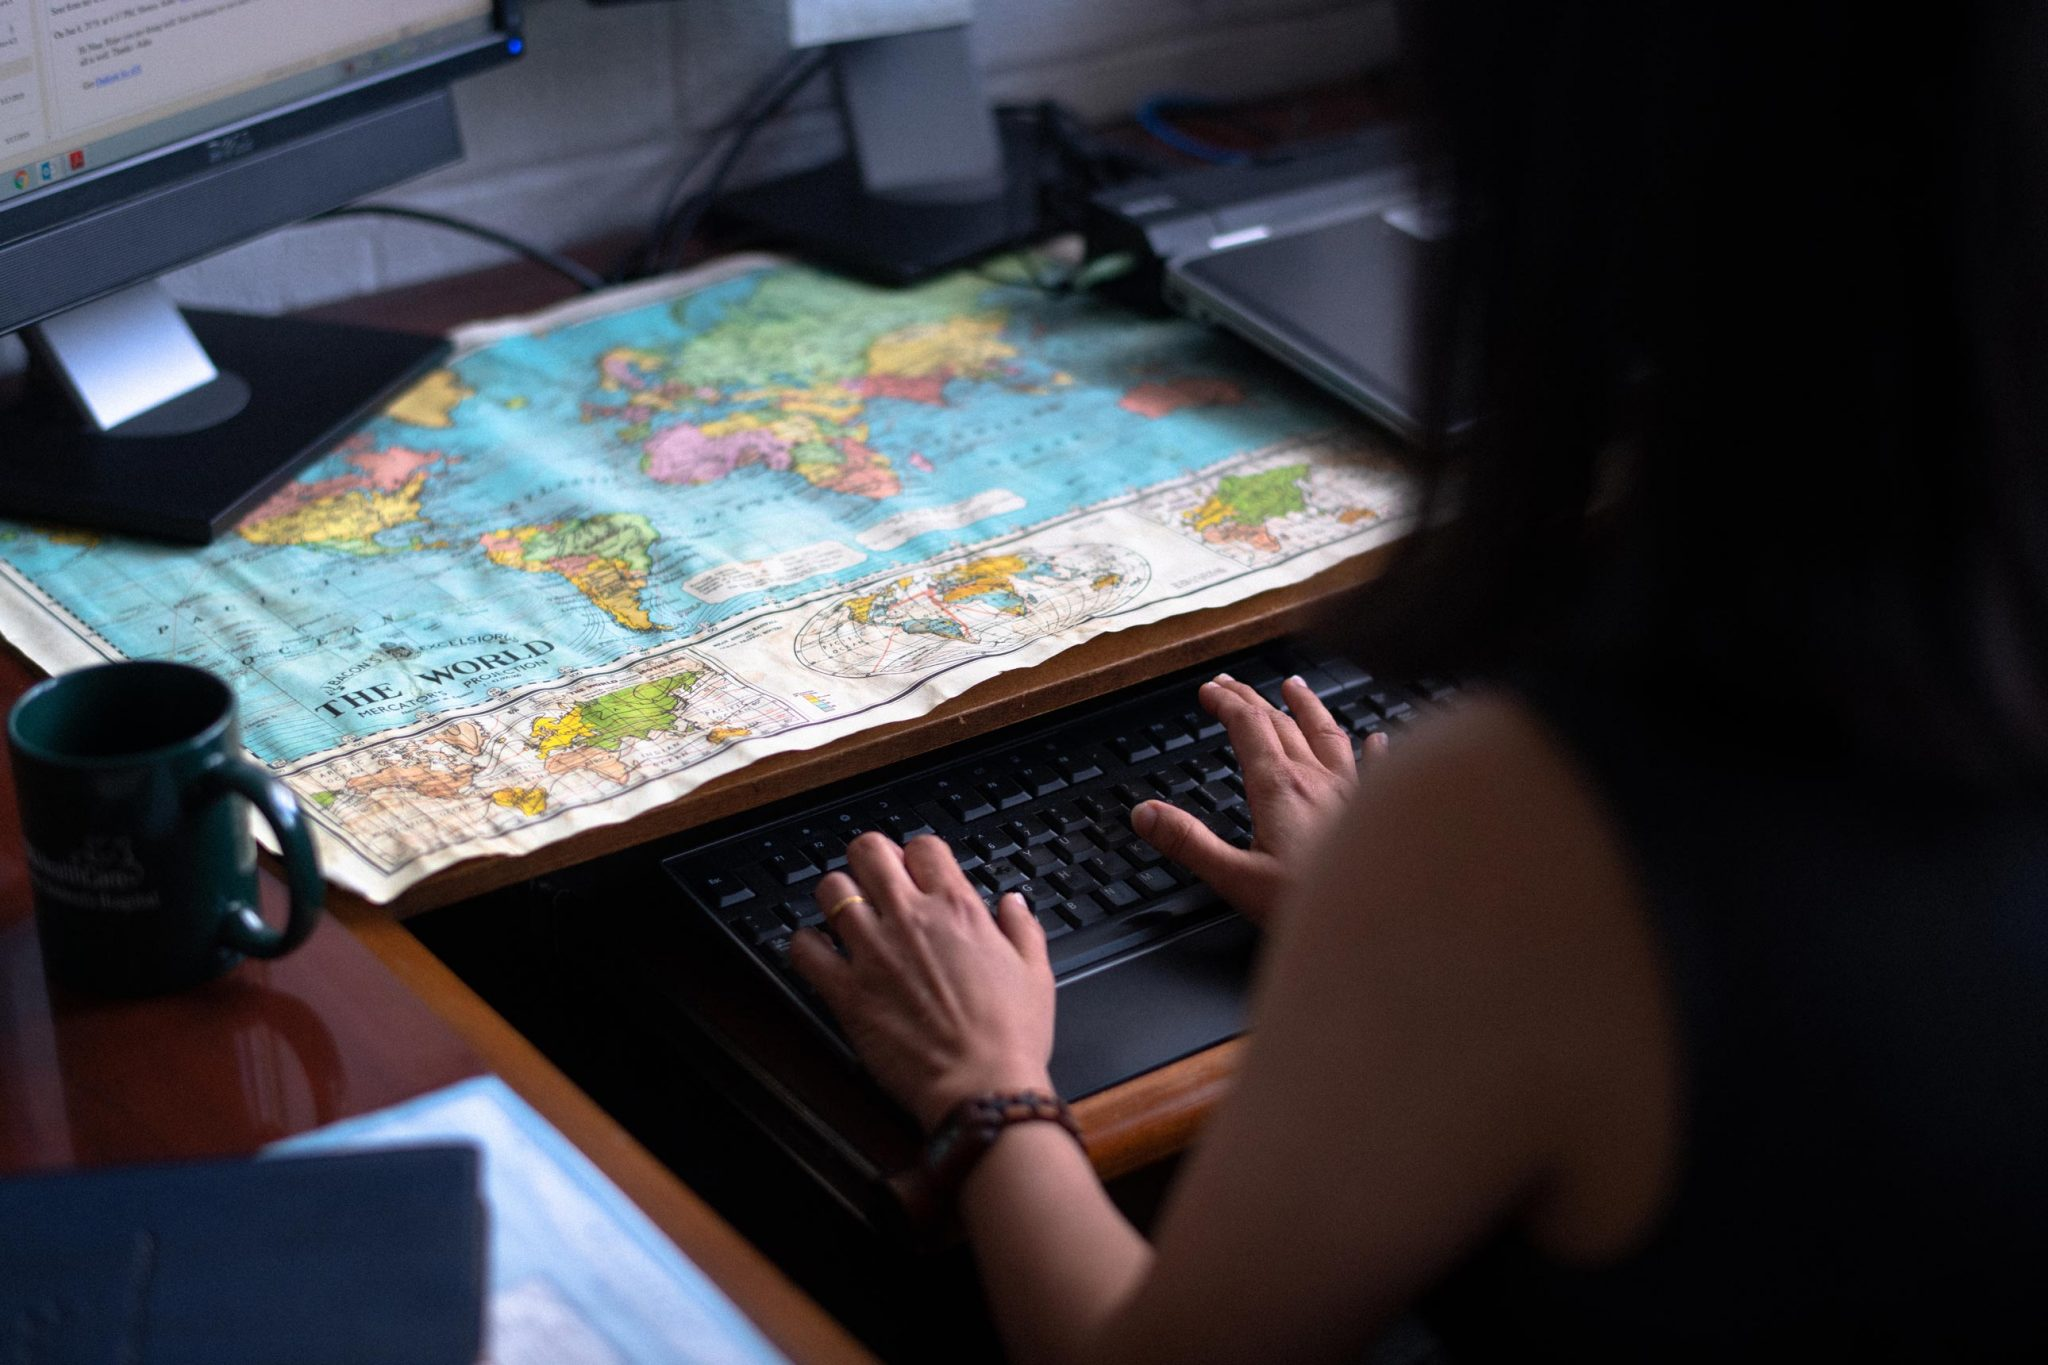 Dr. Shenoi types on her computer with a world map on her desk in front of her.